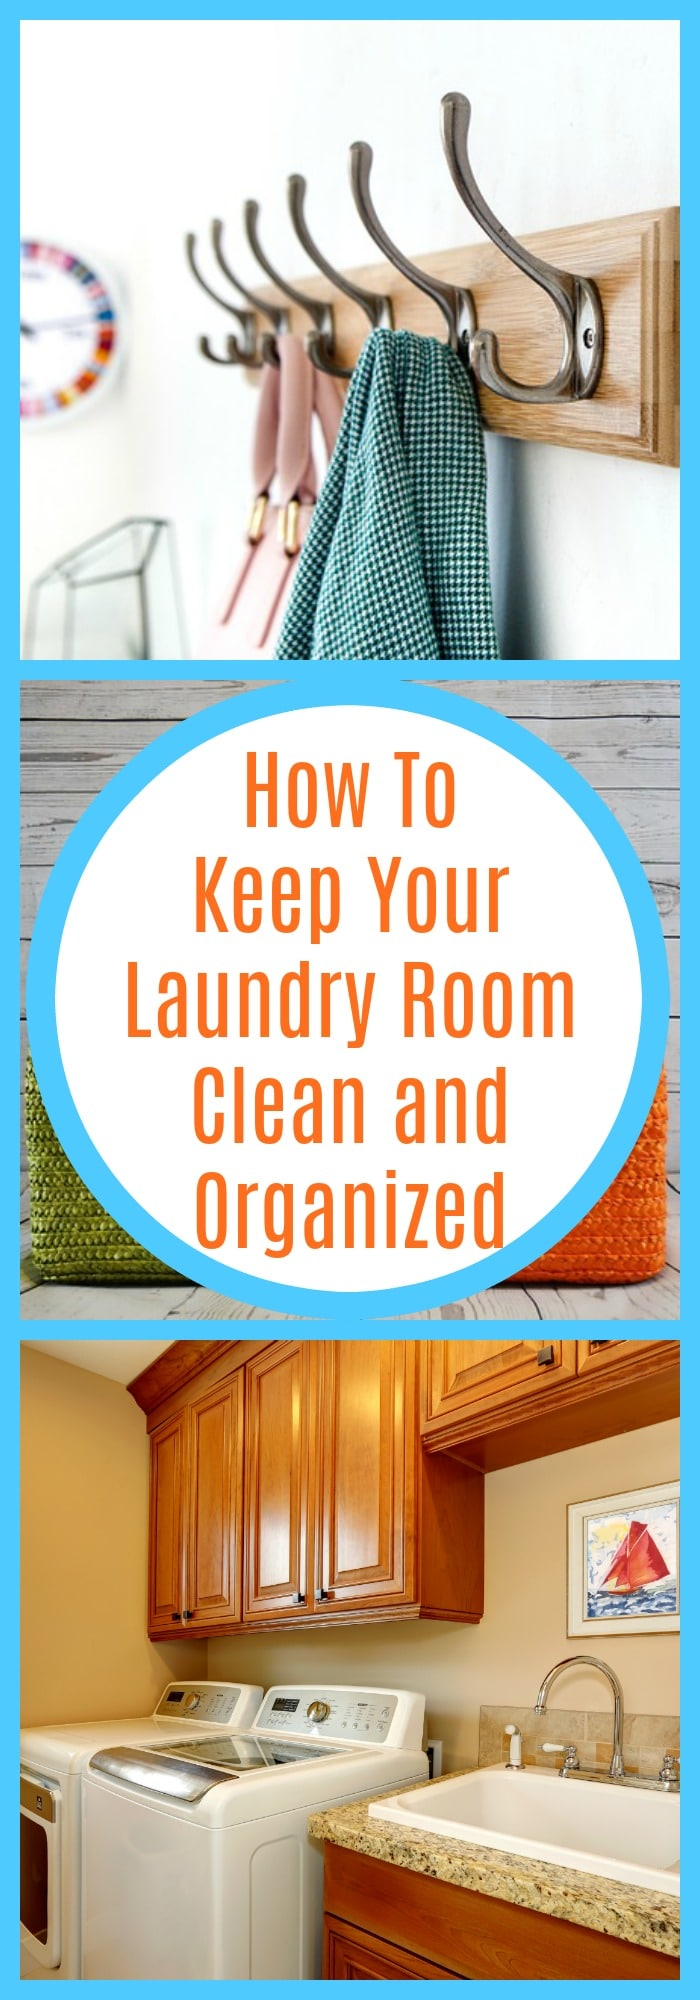 Organization--How to Keep Your Laundry Room Clean and Organized--The Organized Mom